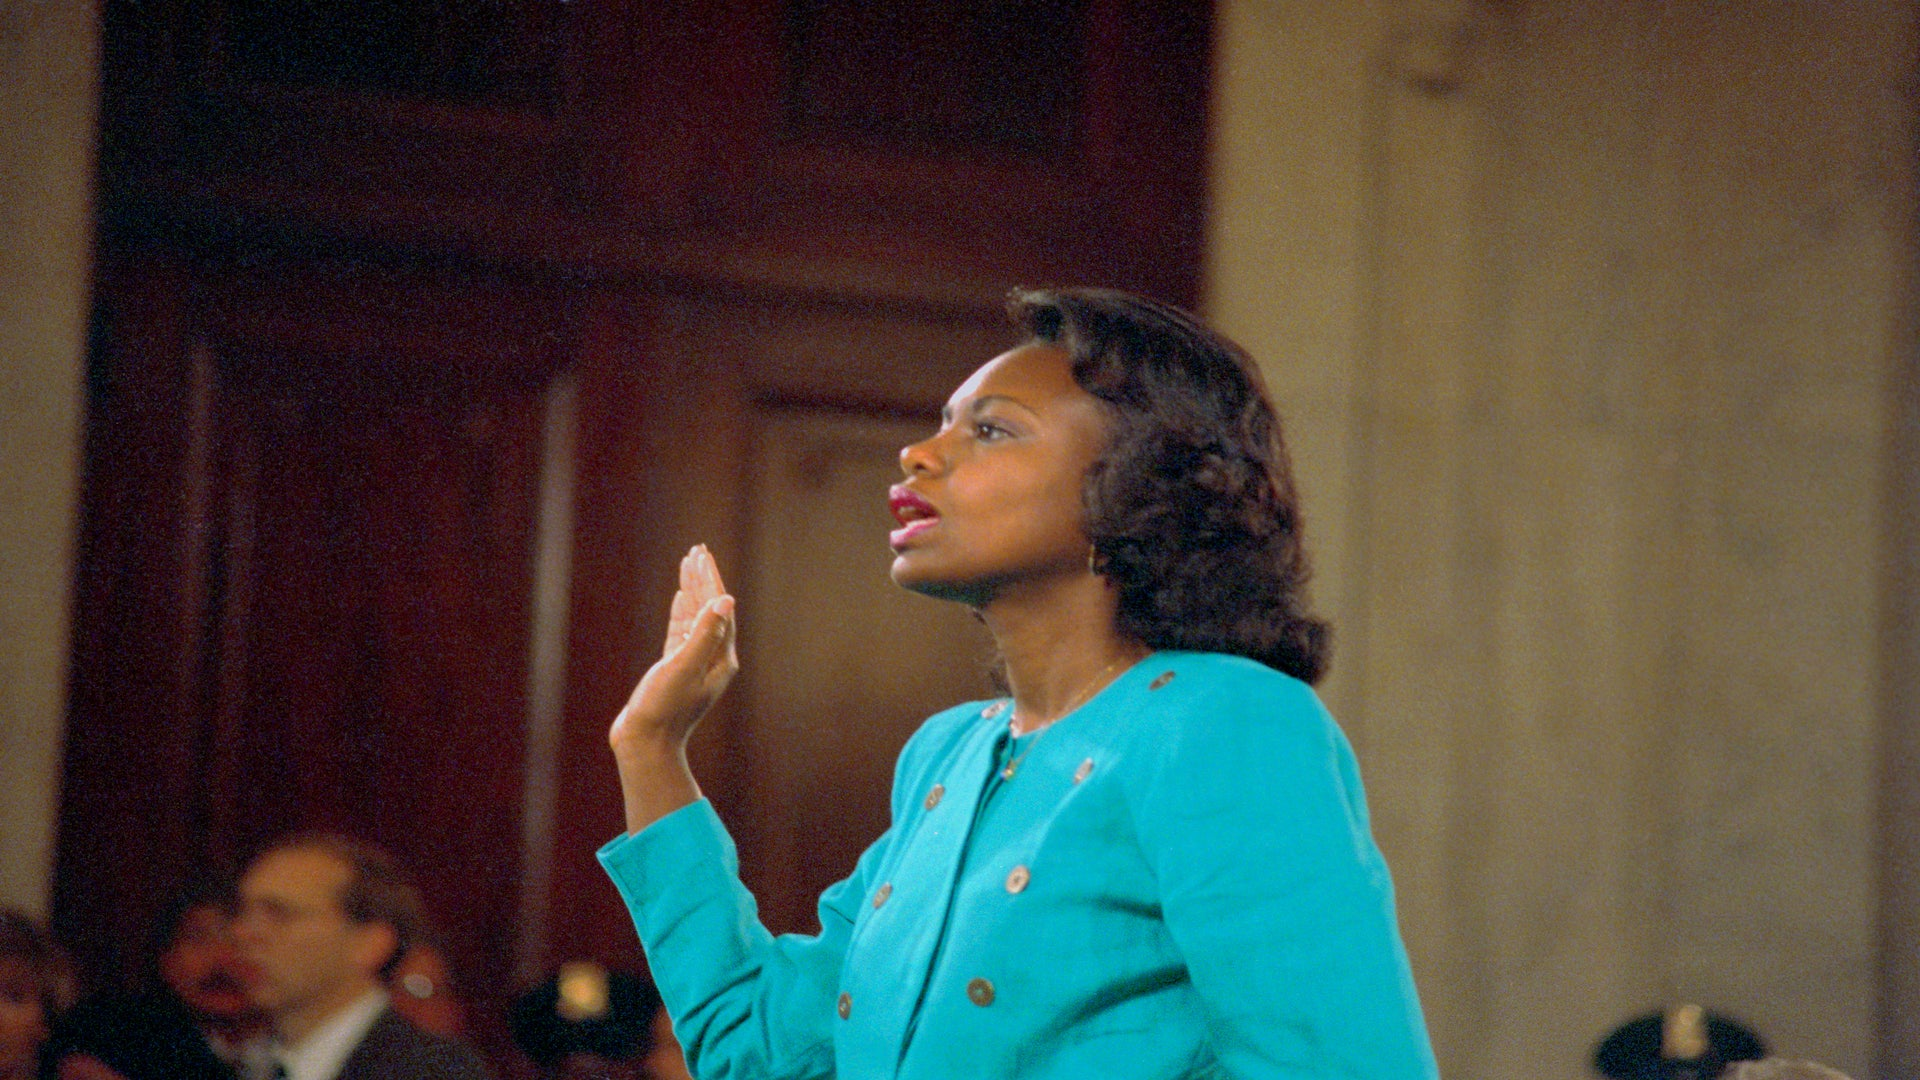 This Is Why I Call BS On Joe Biden's 'Apology' To Anita Hill